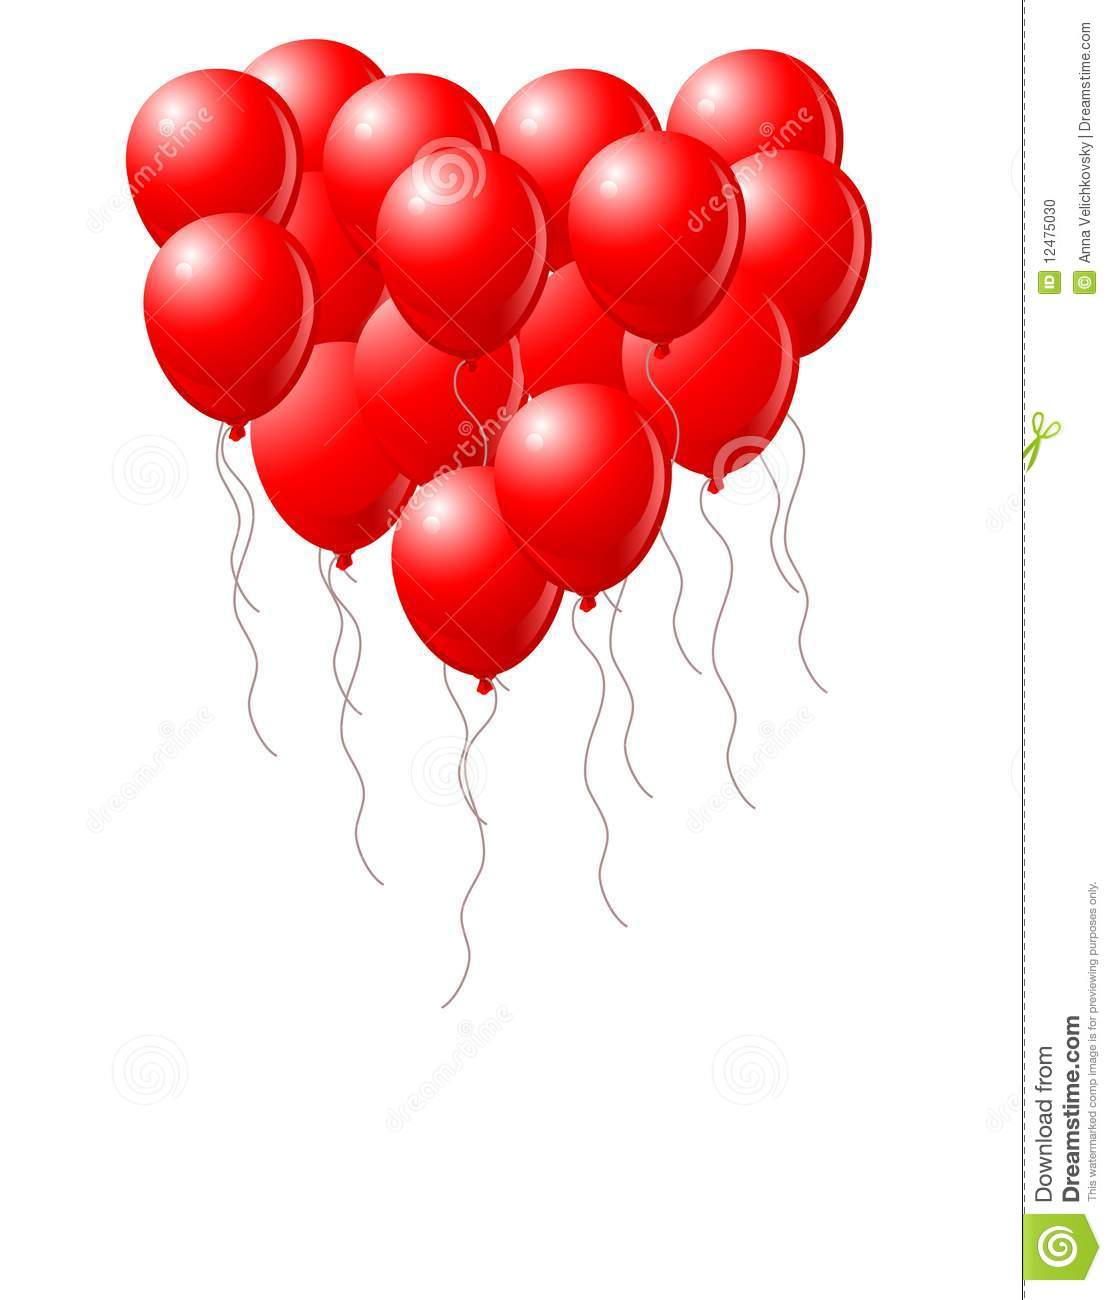 Heart Balloons Stock Photo - Image: 12475030